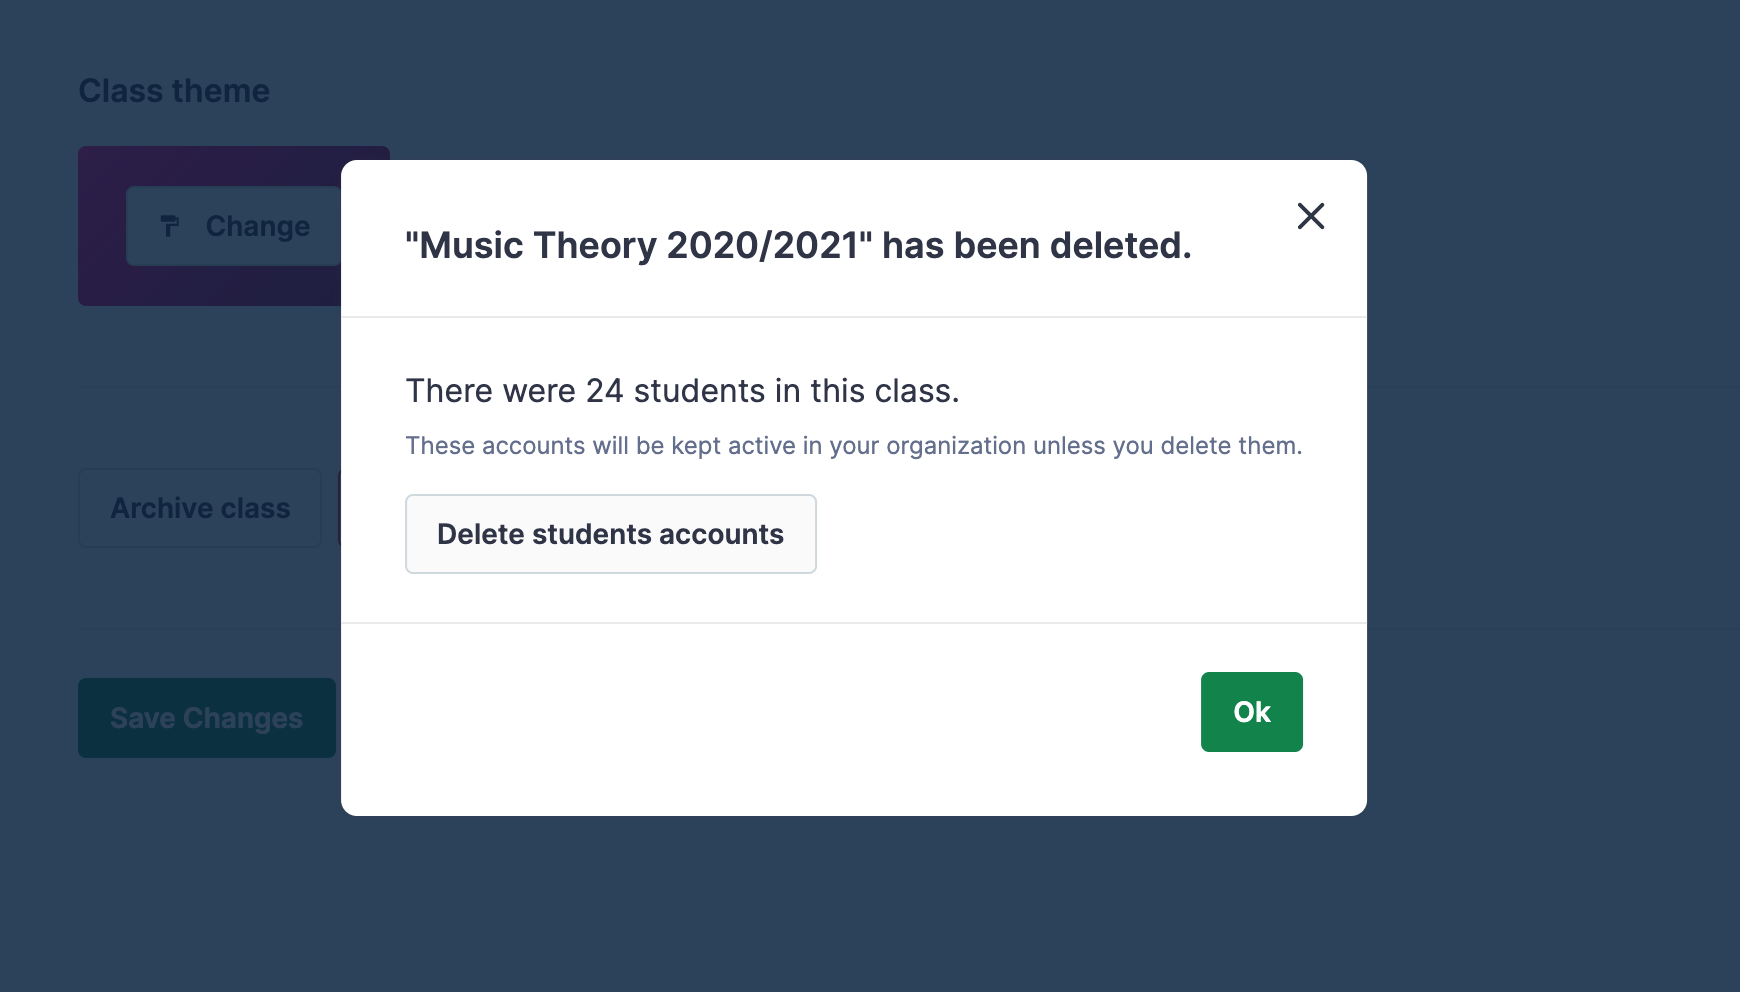 New dialog displayed once the class has been removed: There were 24 students in this class. These accounts will be kept active in your organization unless you delete them.